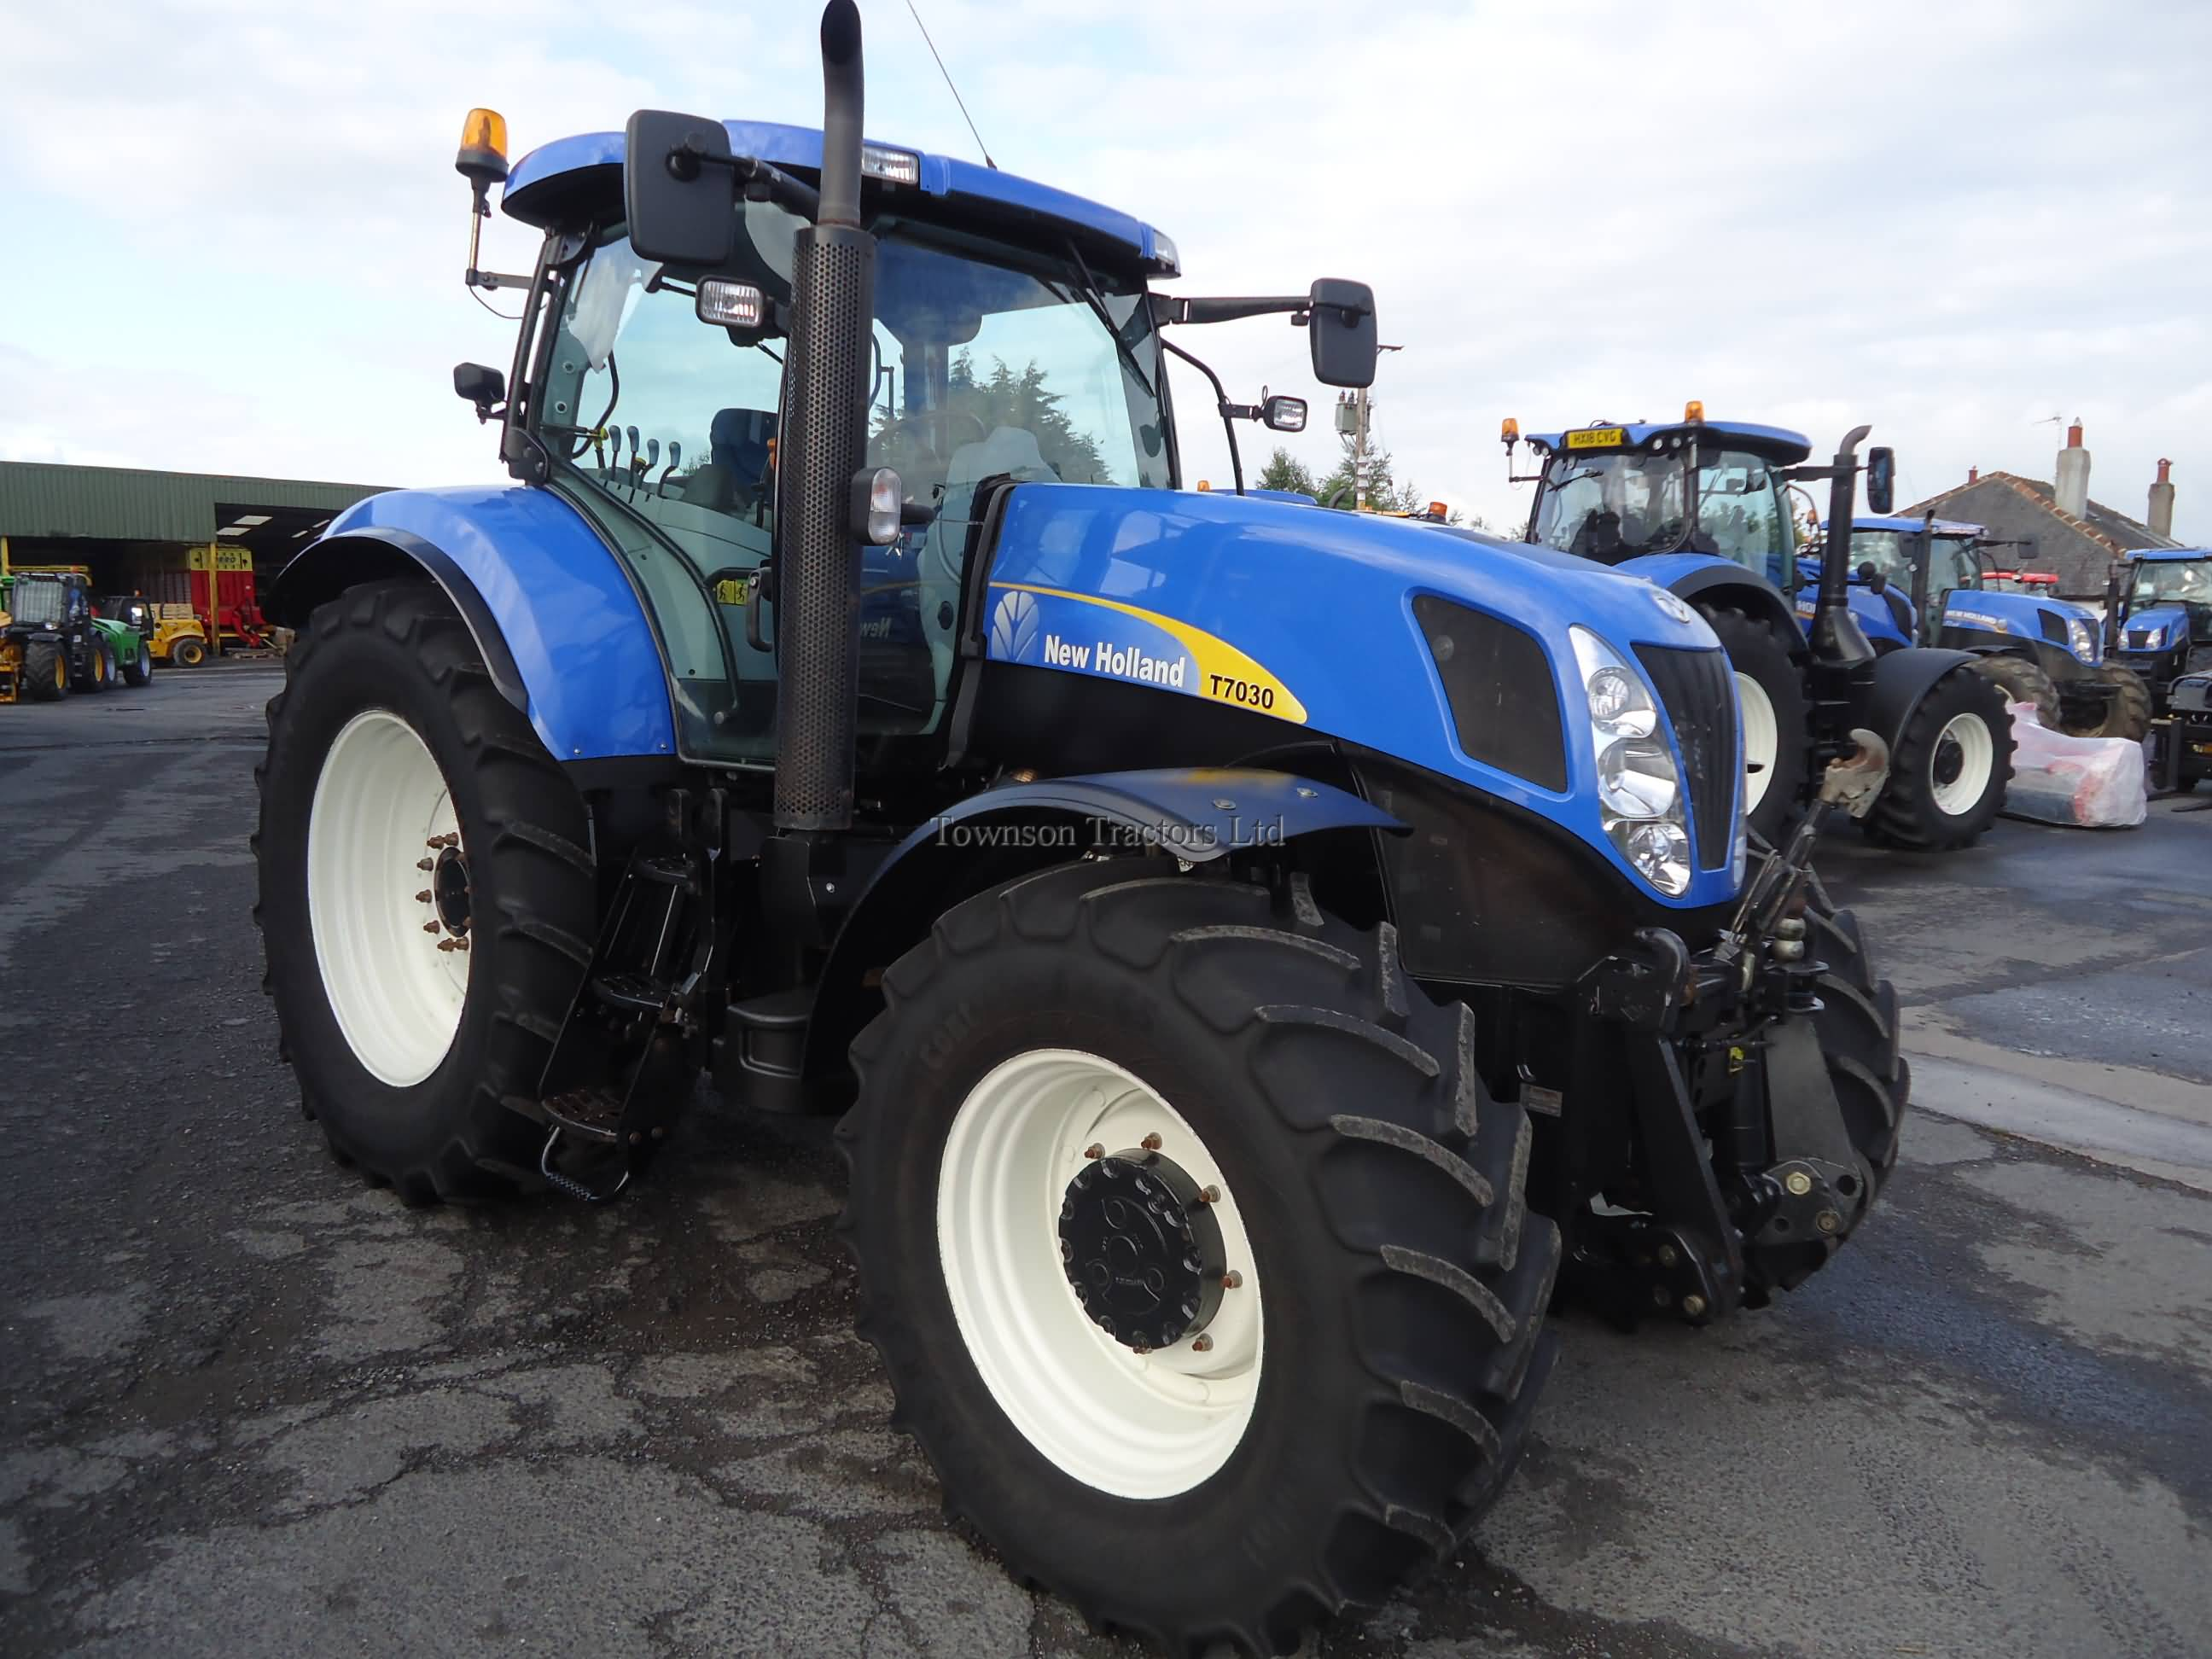 New Holland T7030 - Townson Tractors